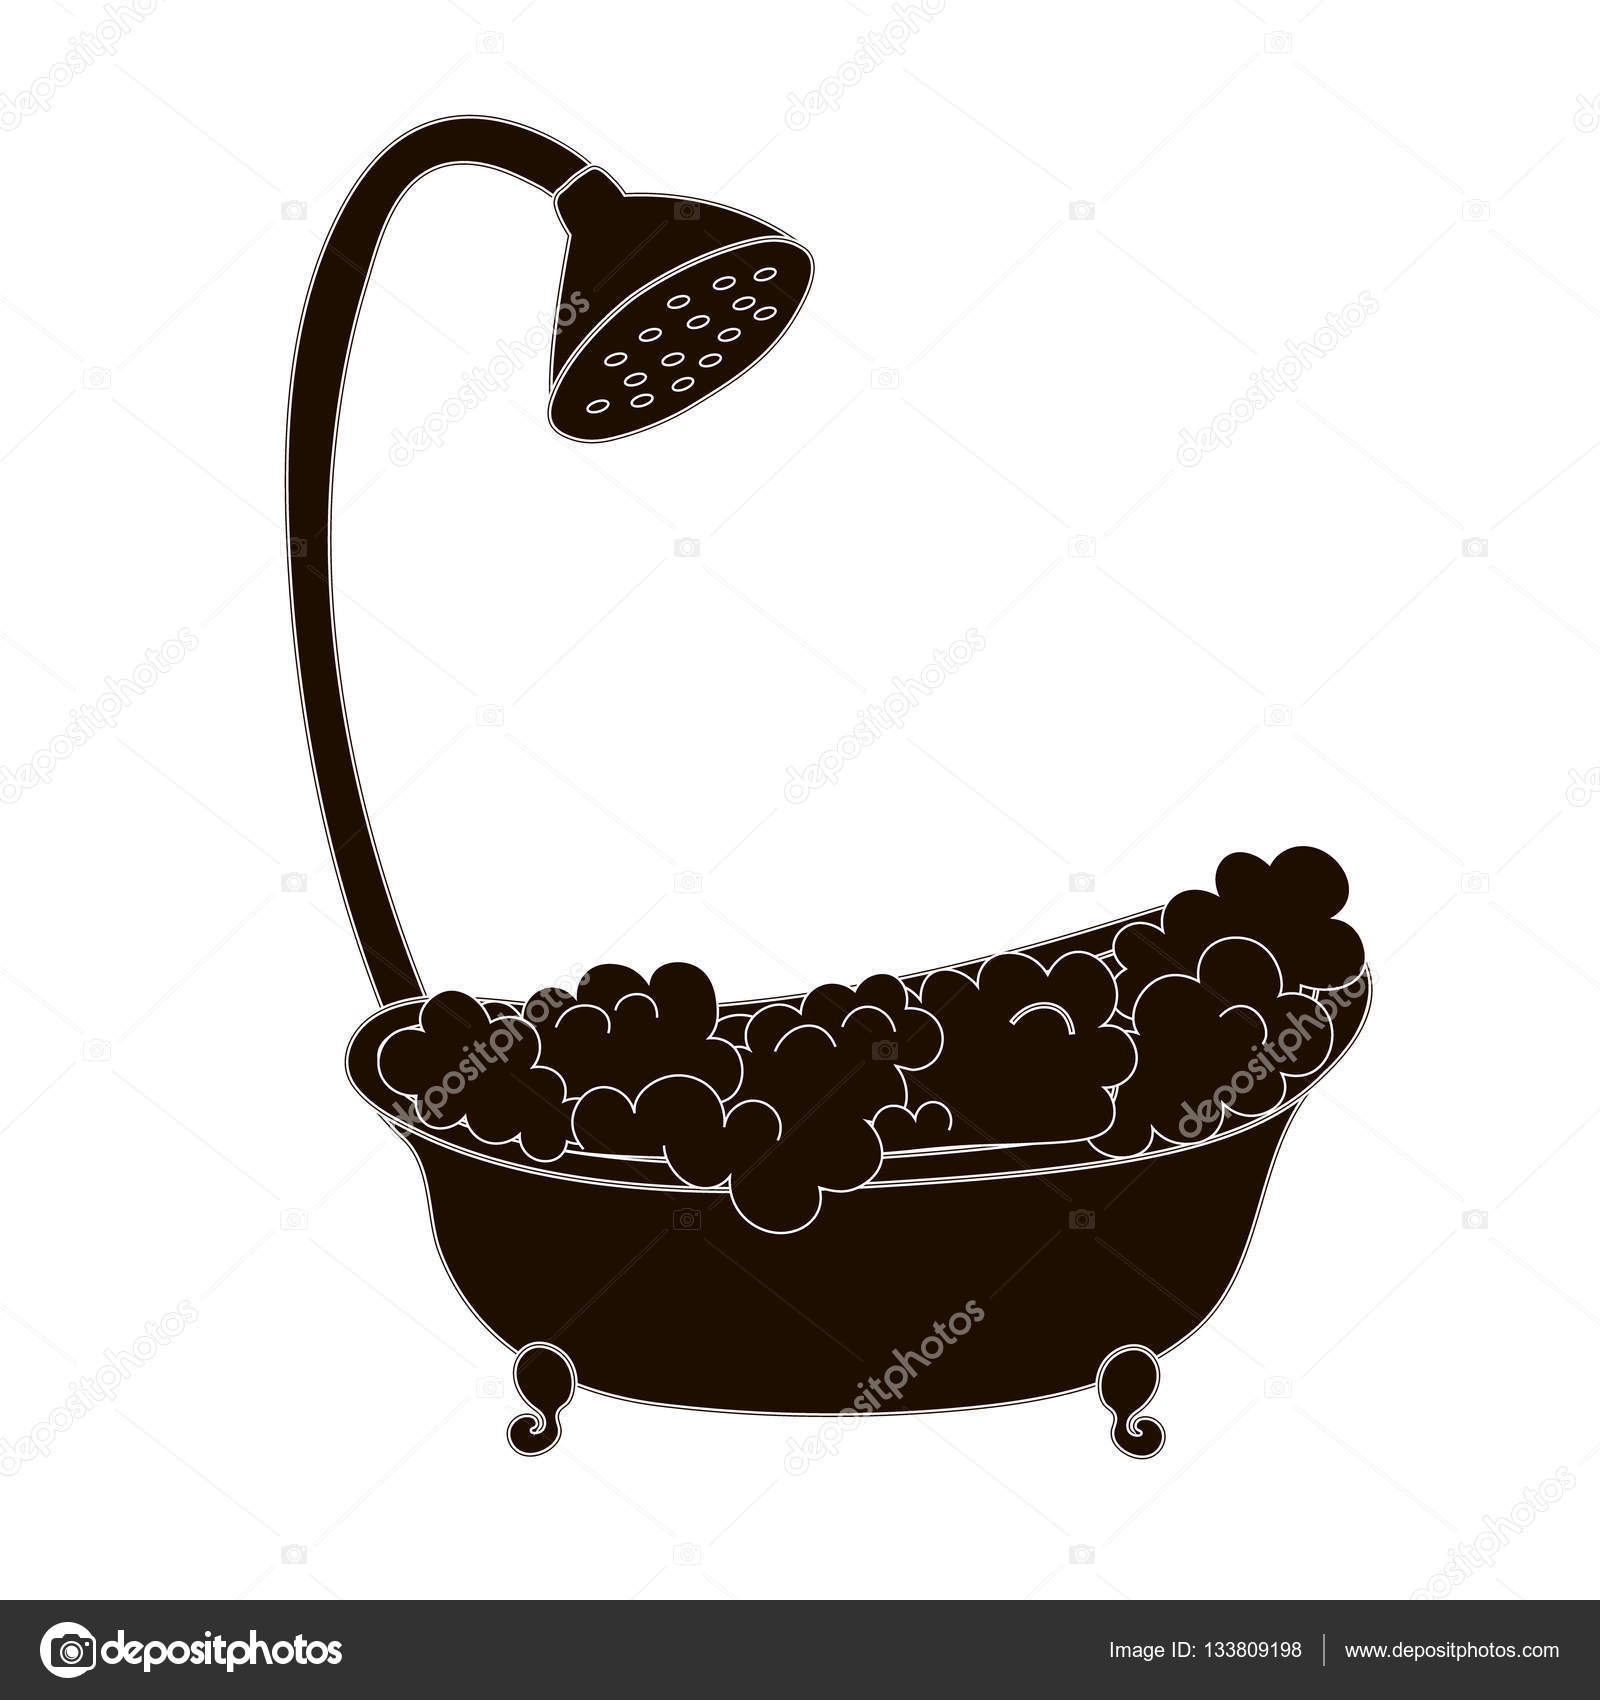 Clawfoot Tub Silhouette Vintage Claw Foot Bathtub With Foam And Bubbles Nice Illustration Of Taking A Shower Black Silhouette Stock Vector C Konevaelvira Gmail Com 133809198